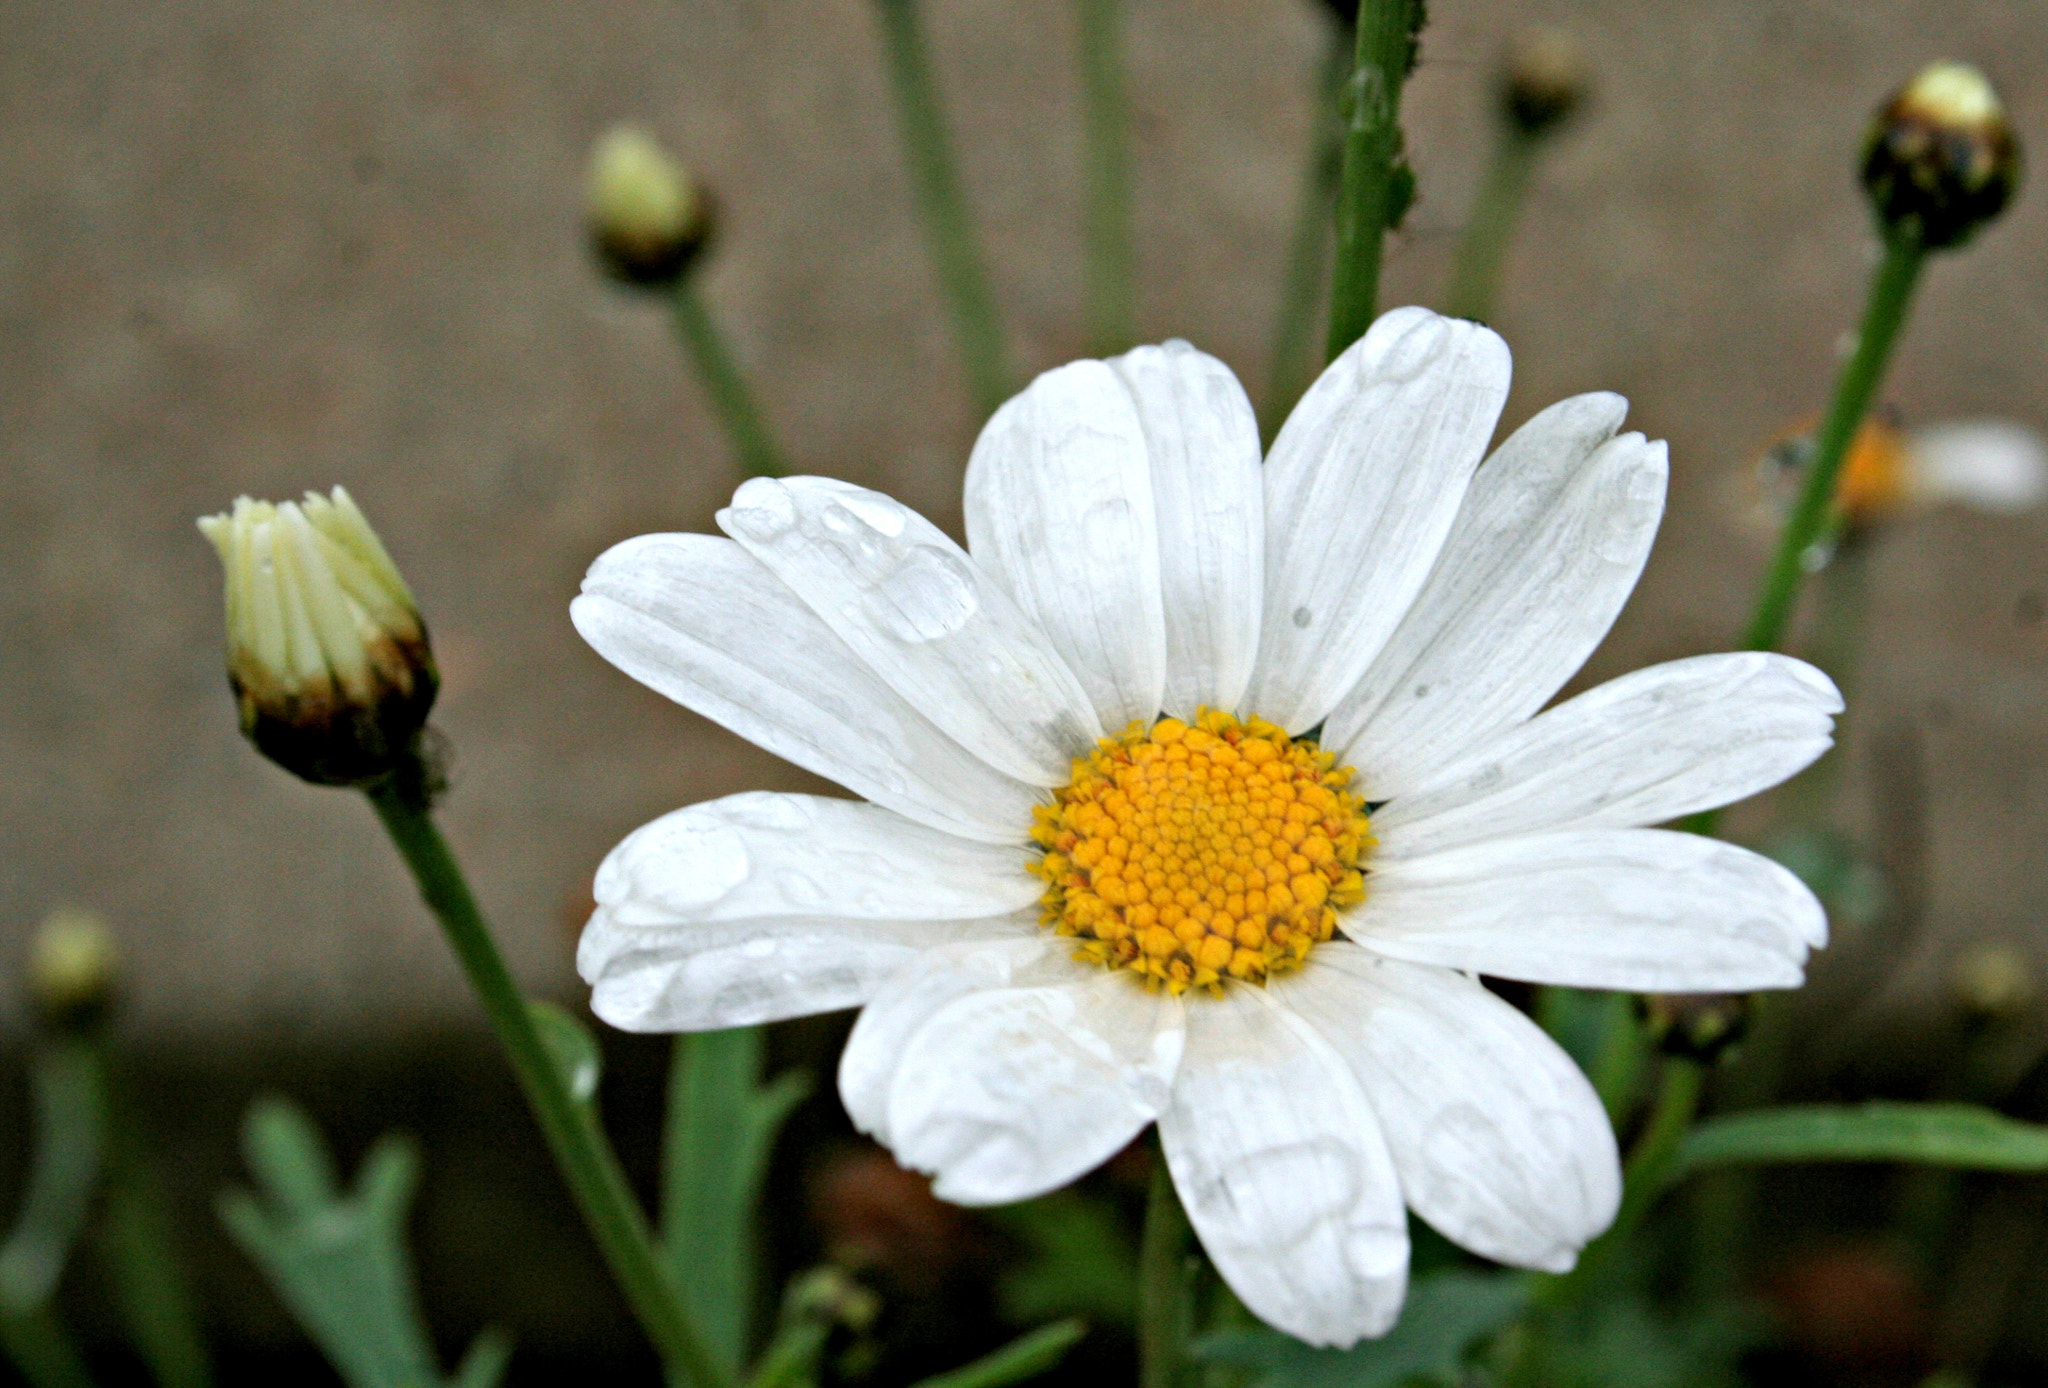 Photograph Daisy by Elle May on 500px